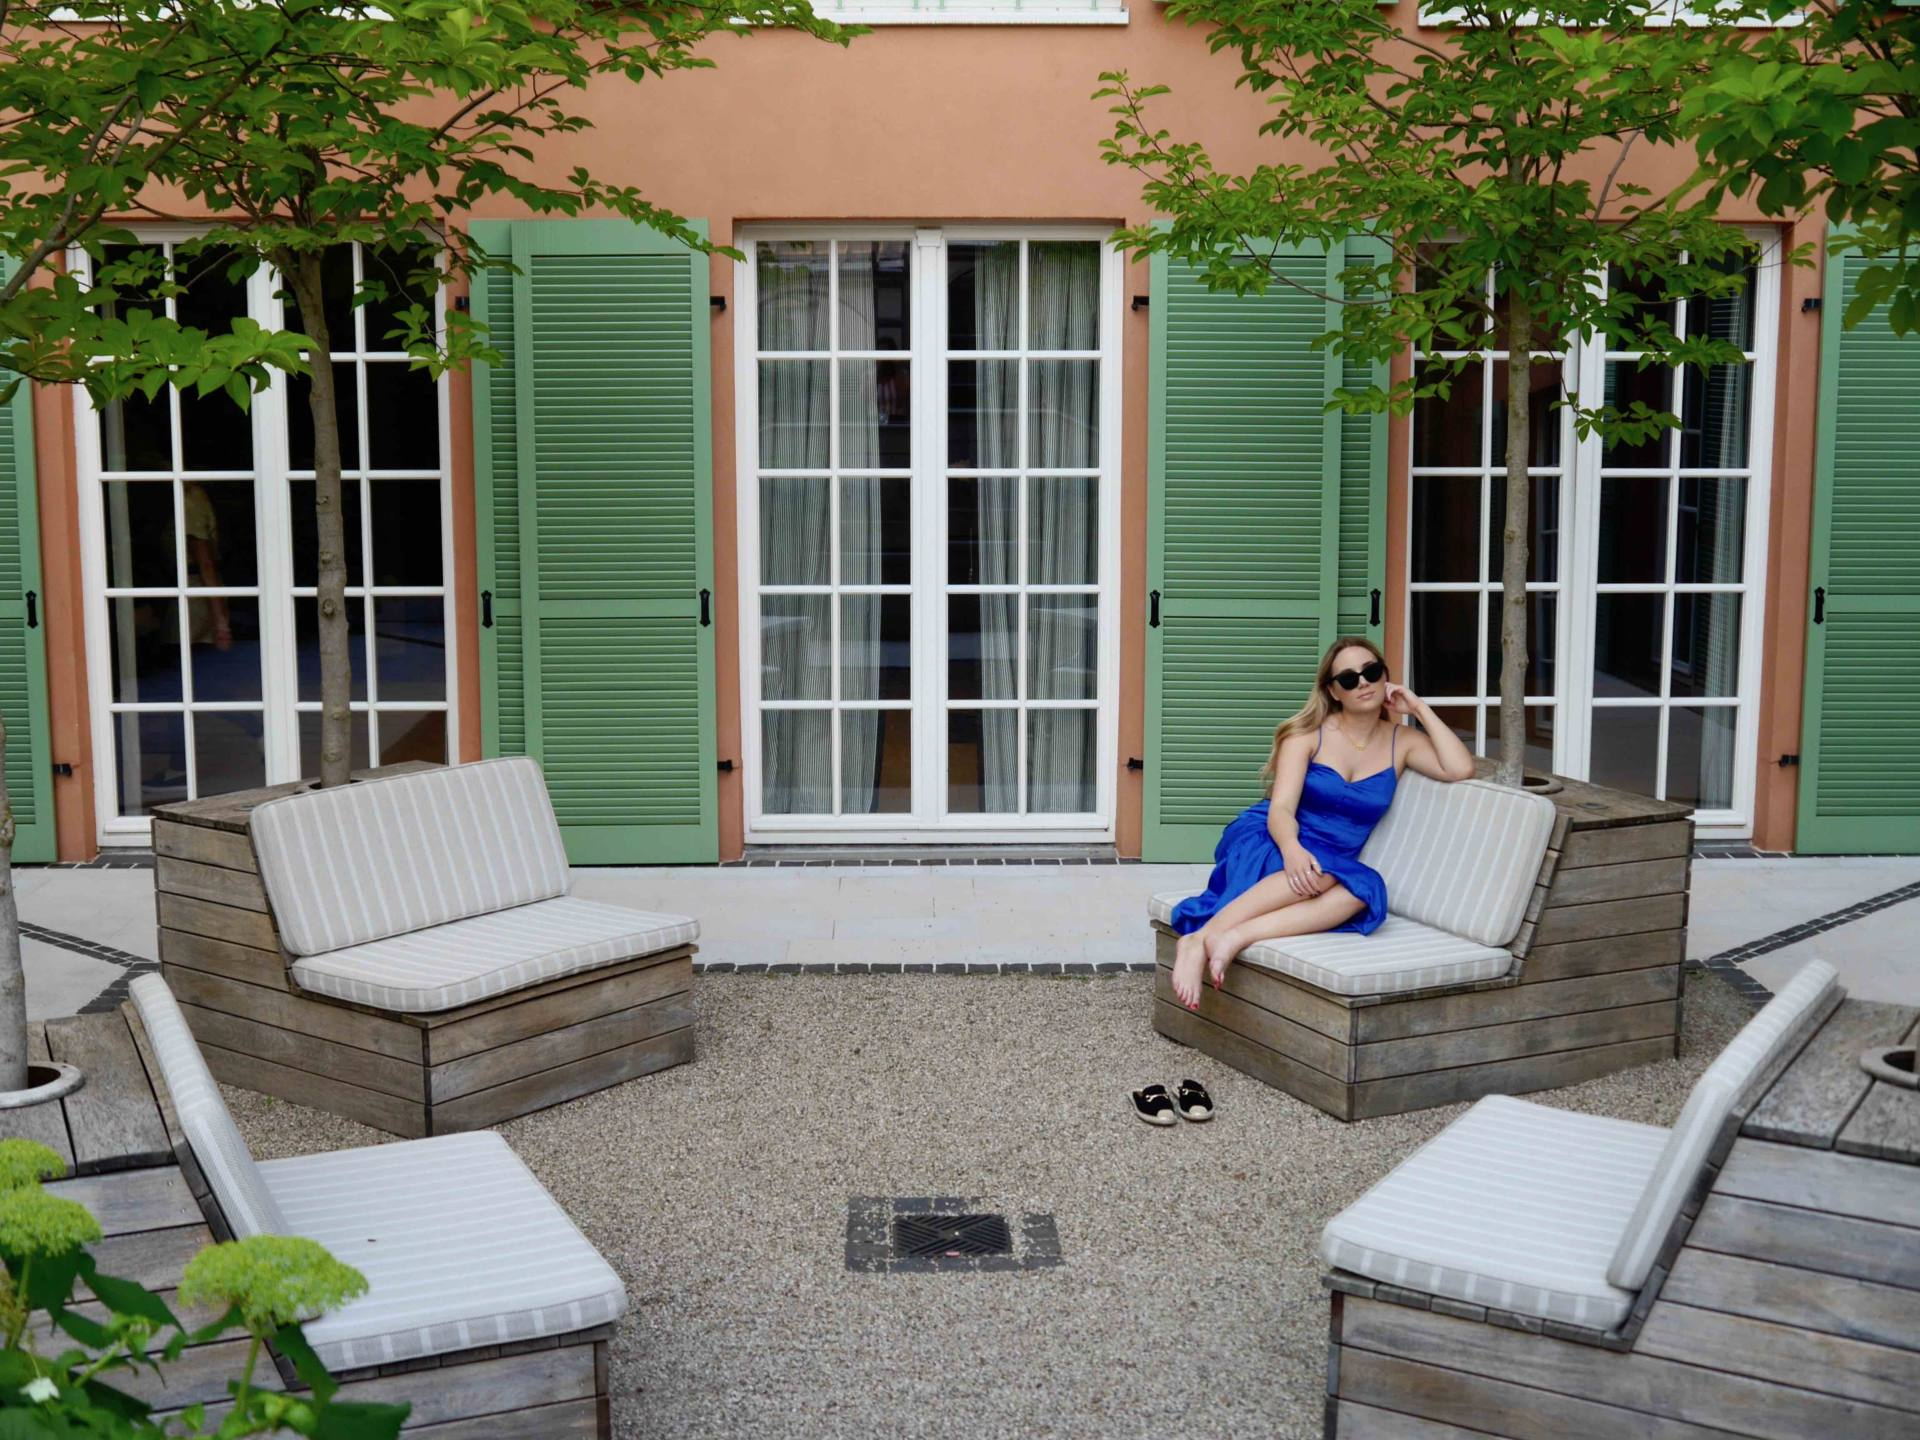 Brenners Park Hotel and Spa | Things to do in the Black Forest